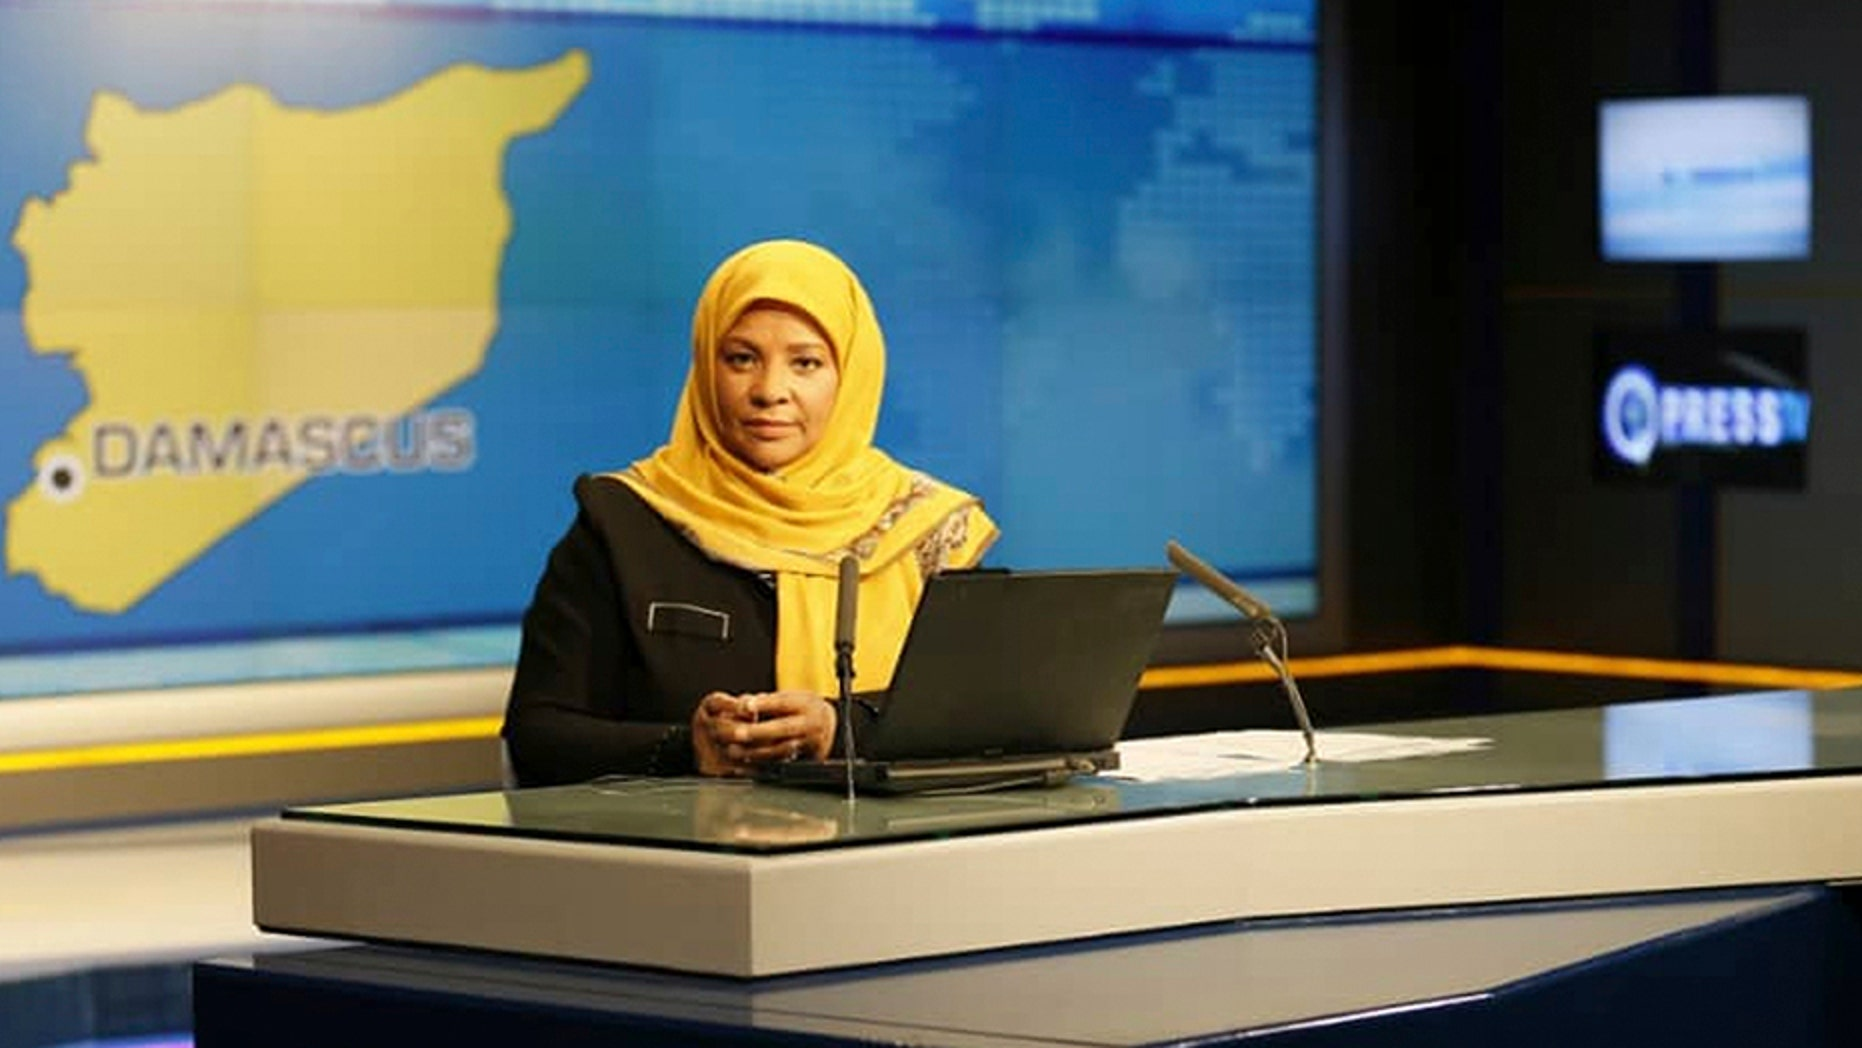 This undated photo provided by Iranian state television's English-language service, Press TV, shows American-born news anchor Marzieh Hashemi at studio in Tehran, Iran.